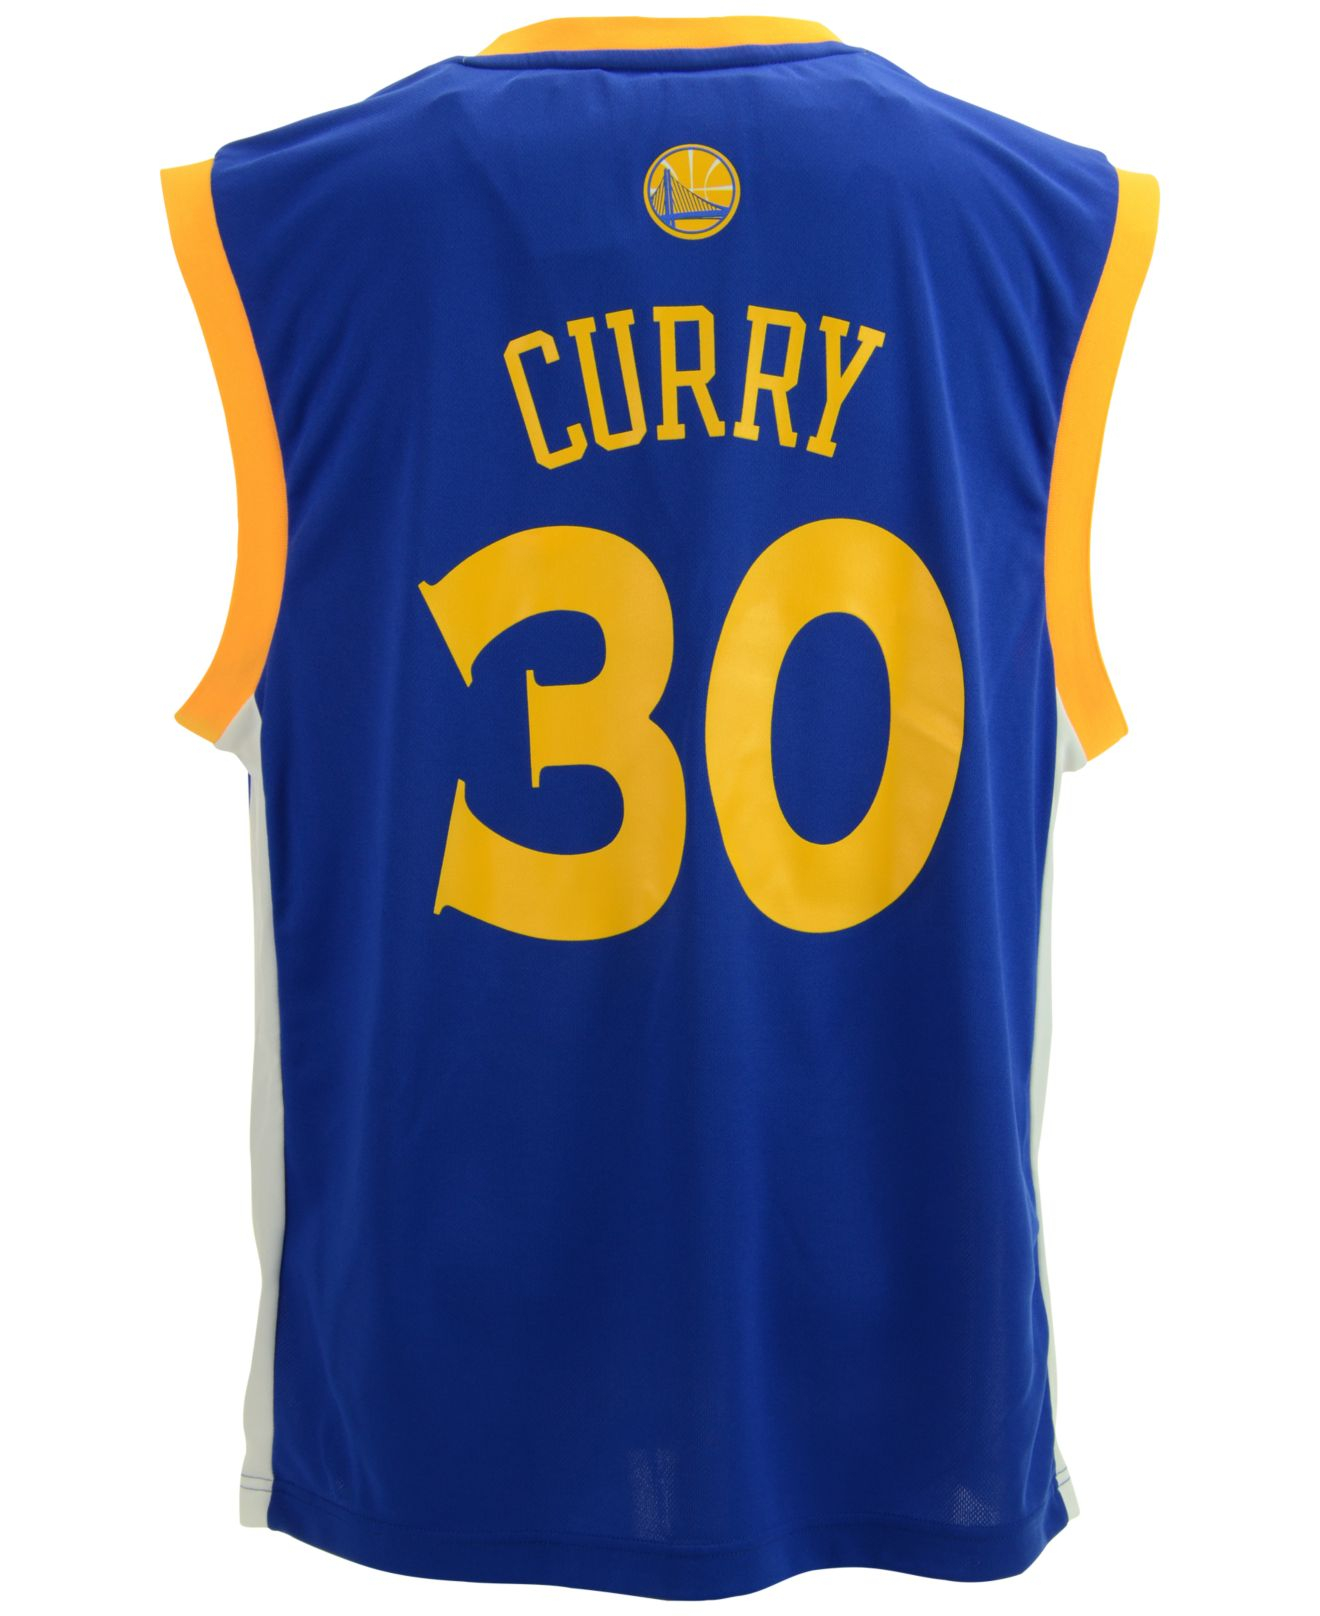 curry stephen 30 jersey ave